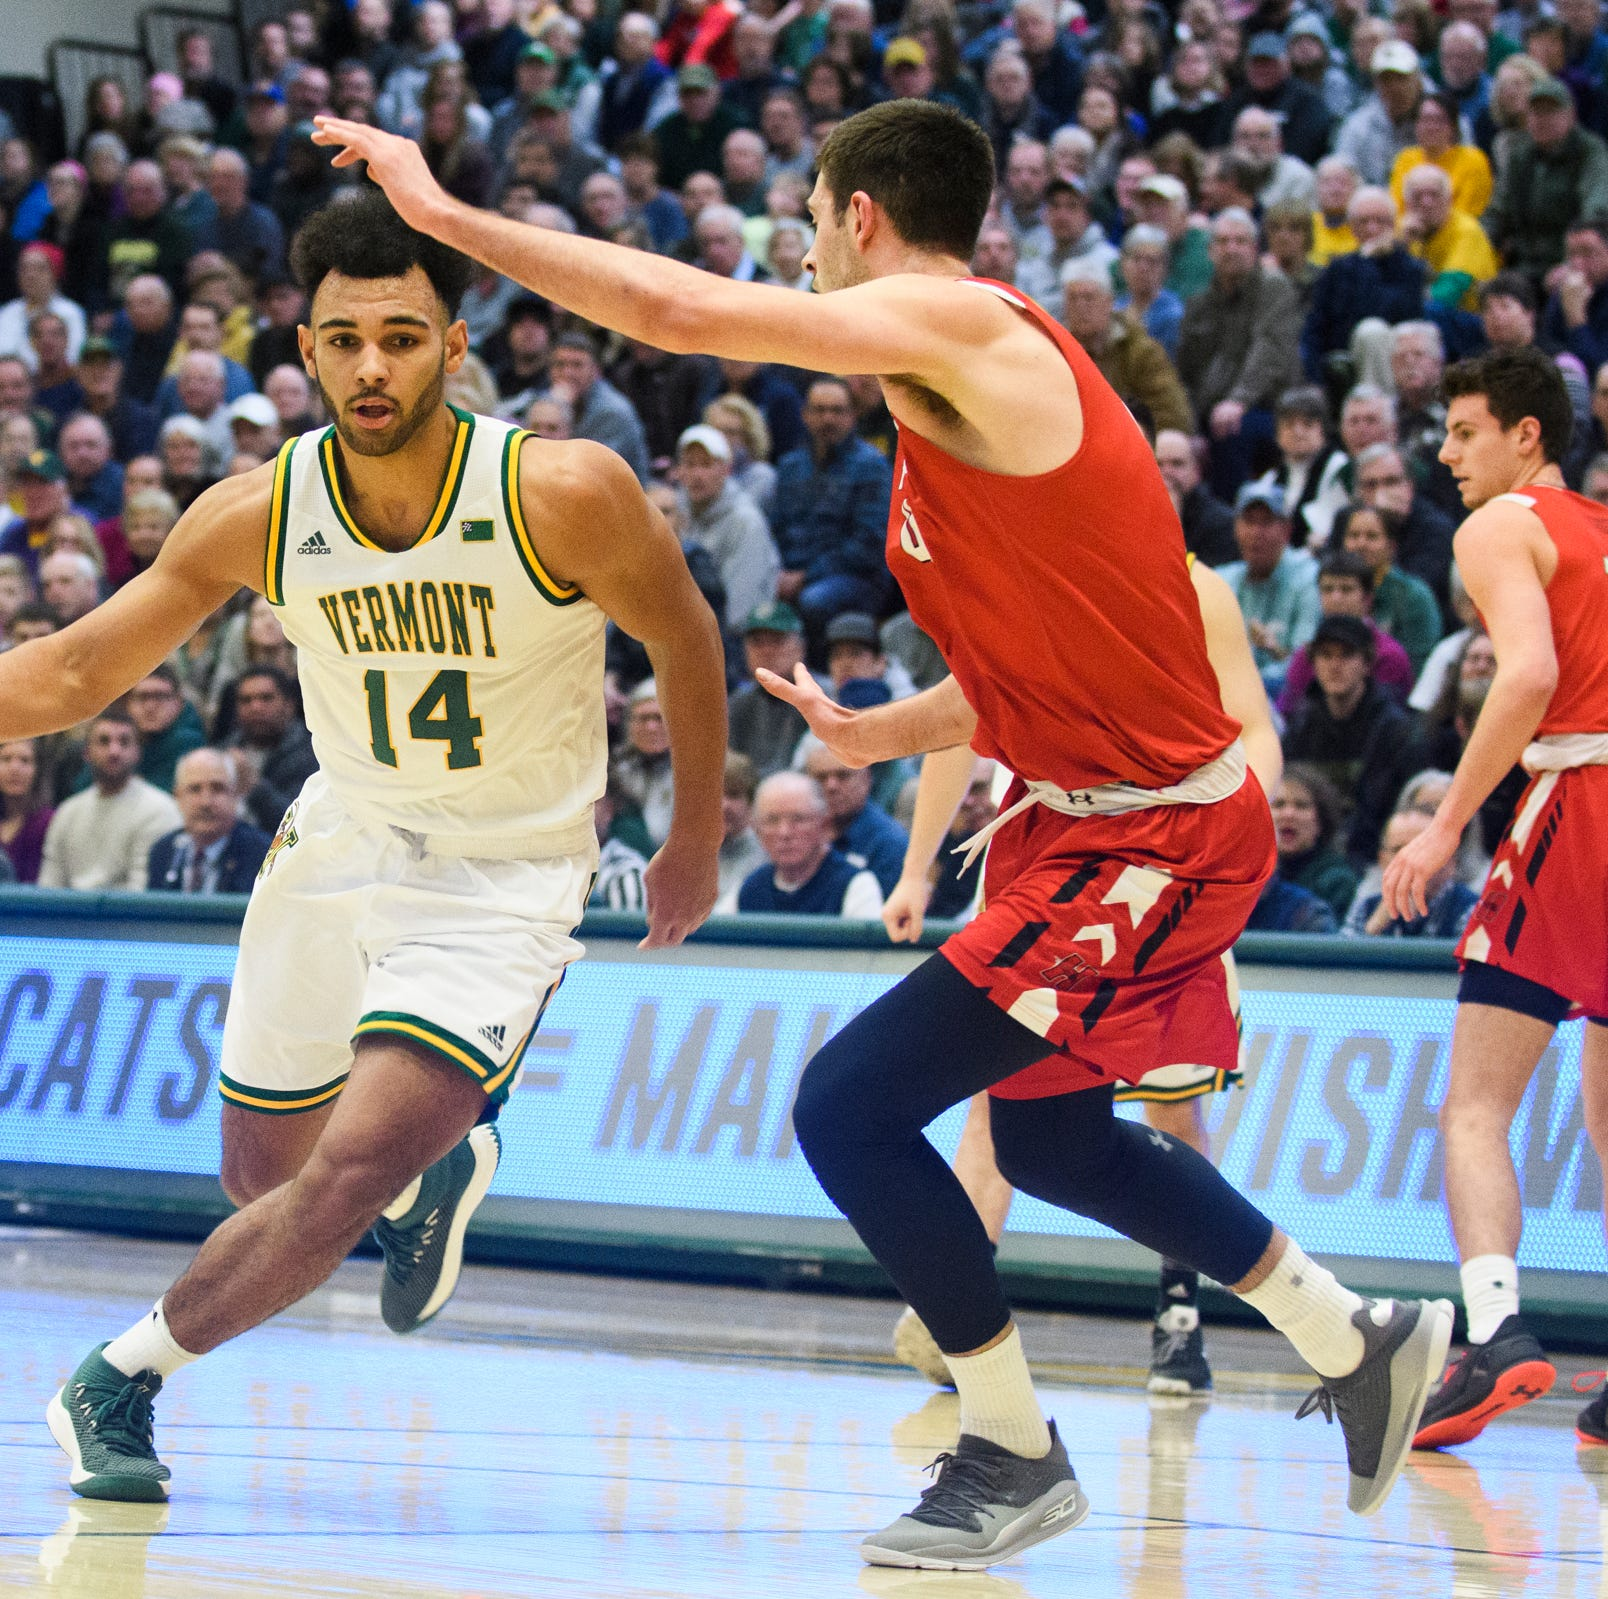 How to watch Vermont men's basketball vs. UMBC Retrievers on TV, stream online